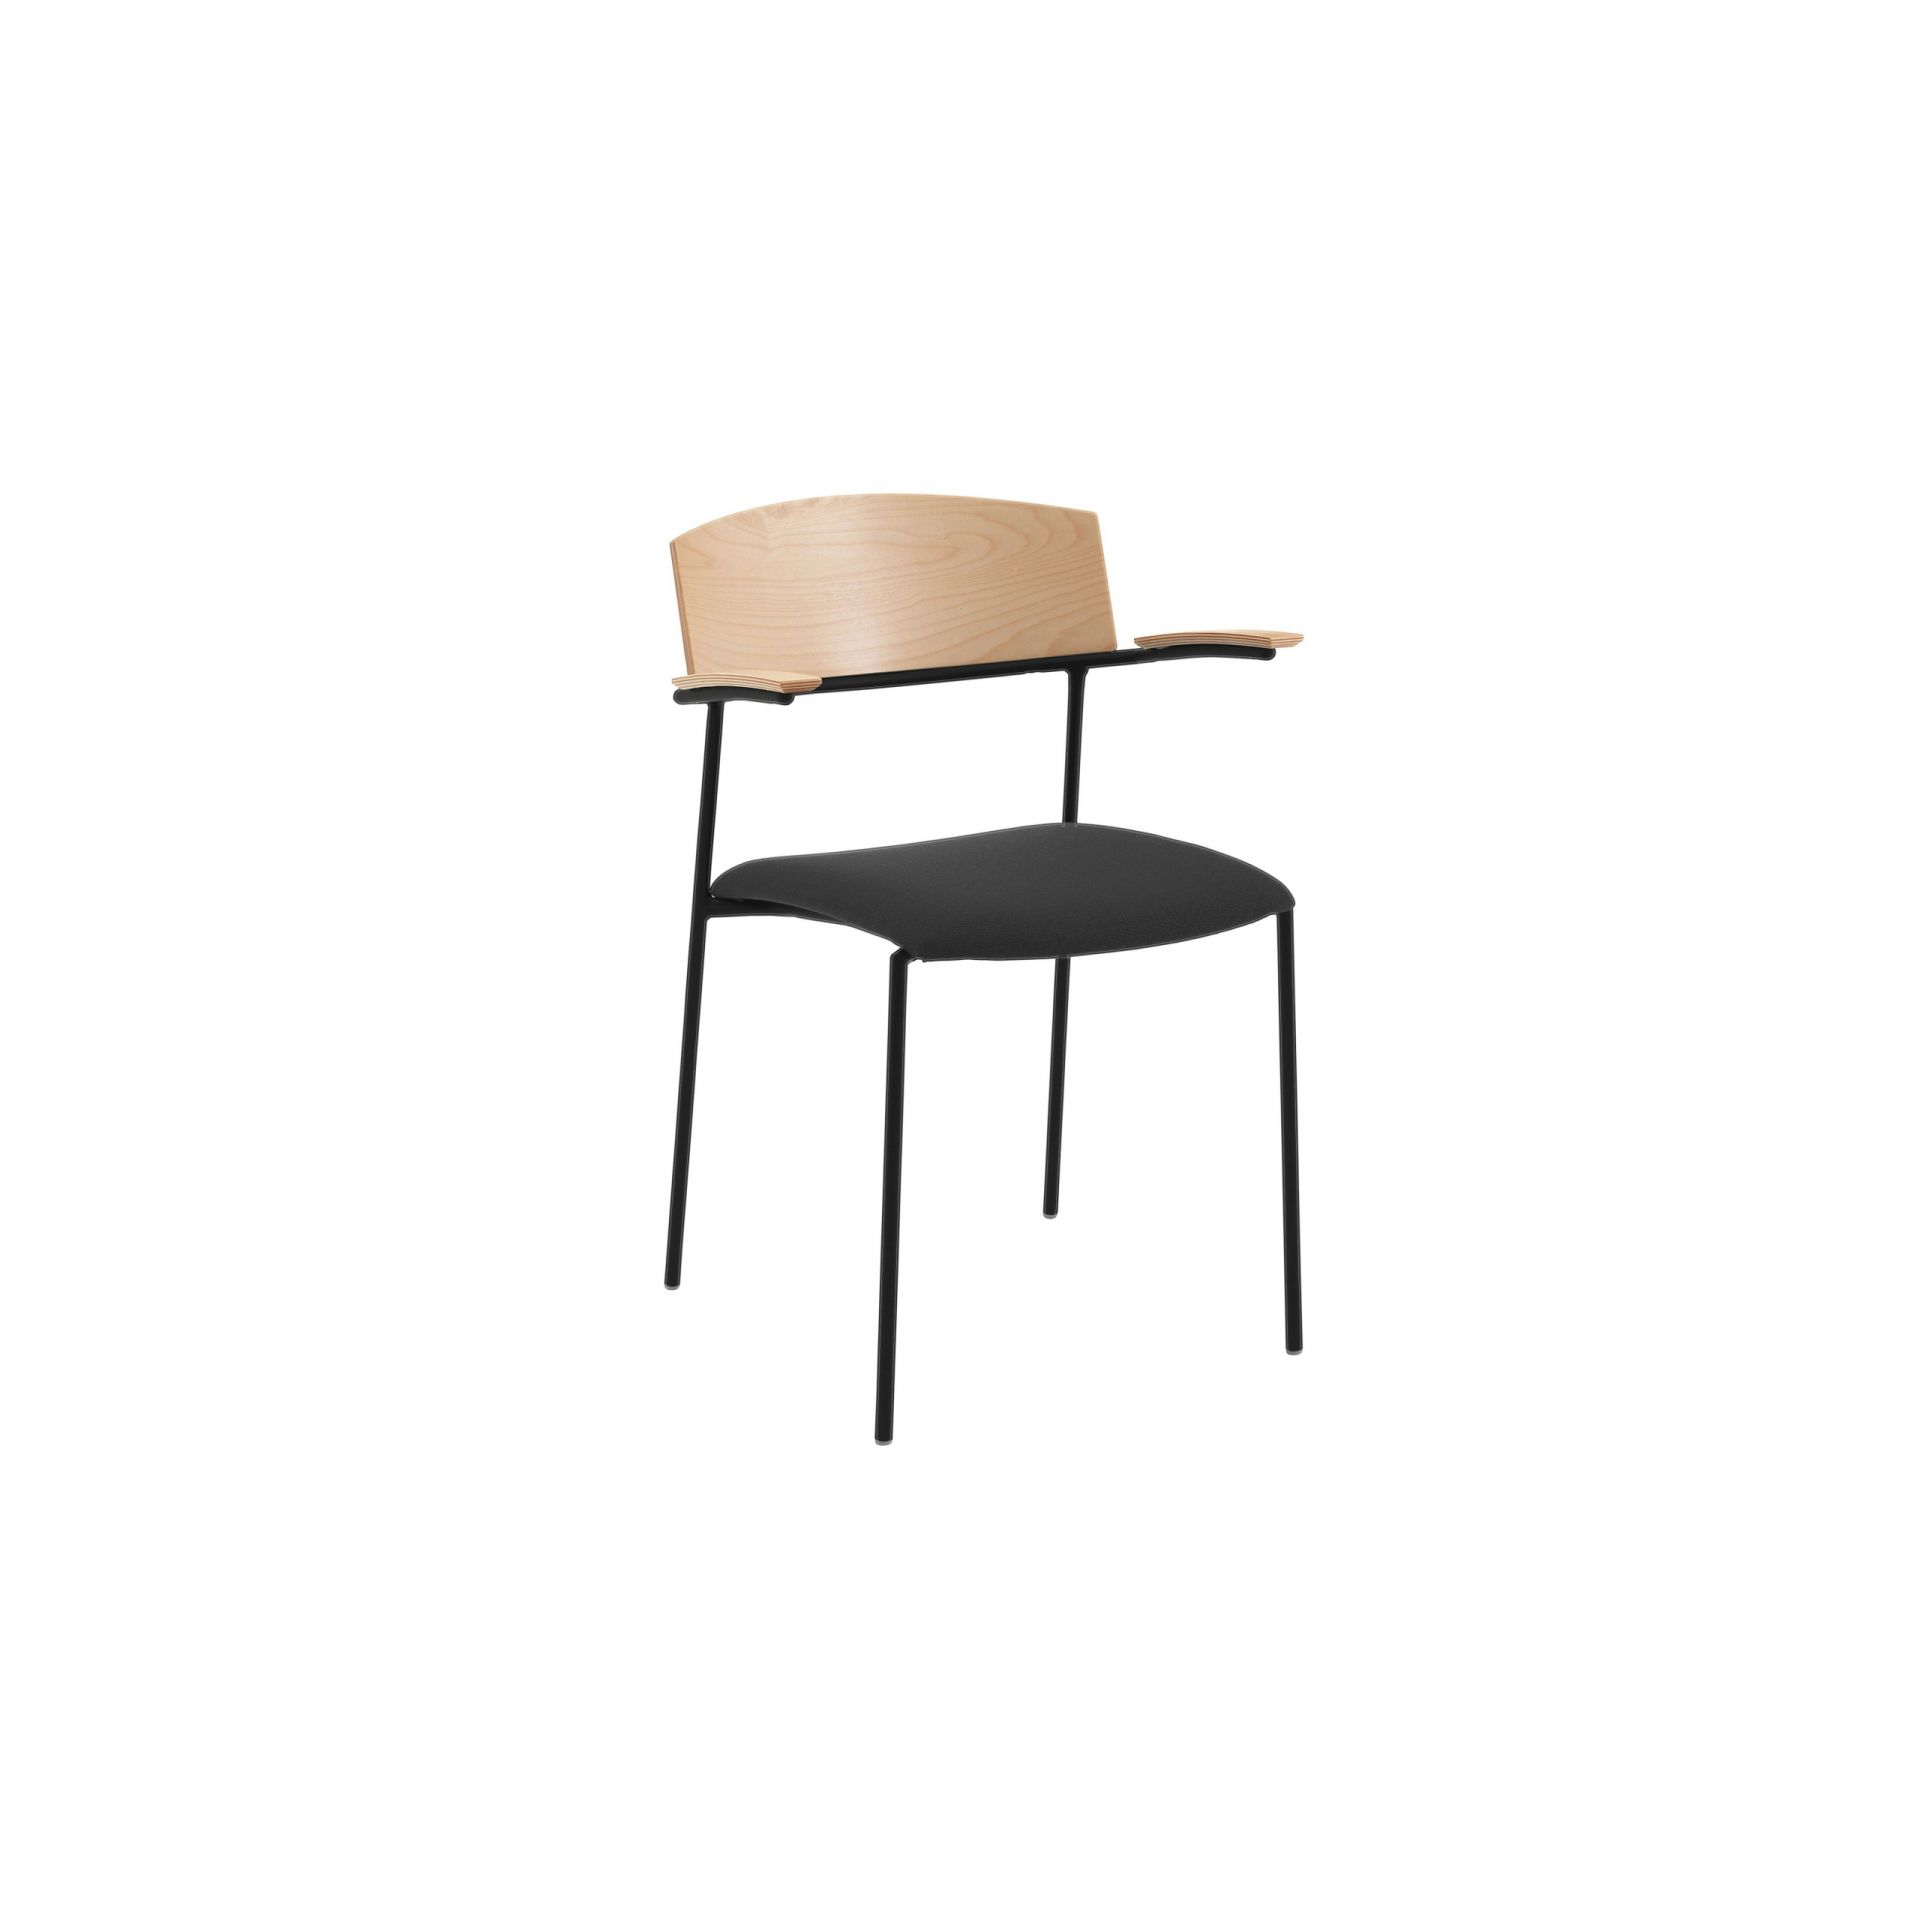 Offy Chair with metal legs product image 1